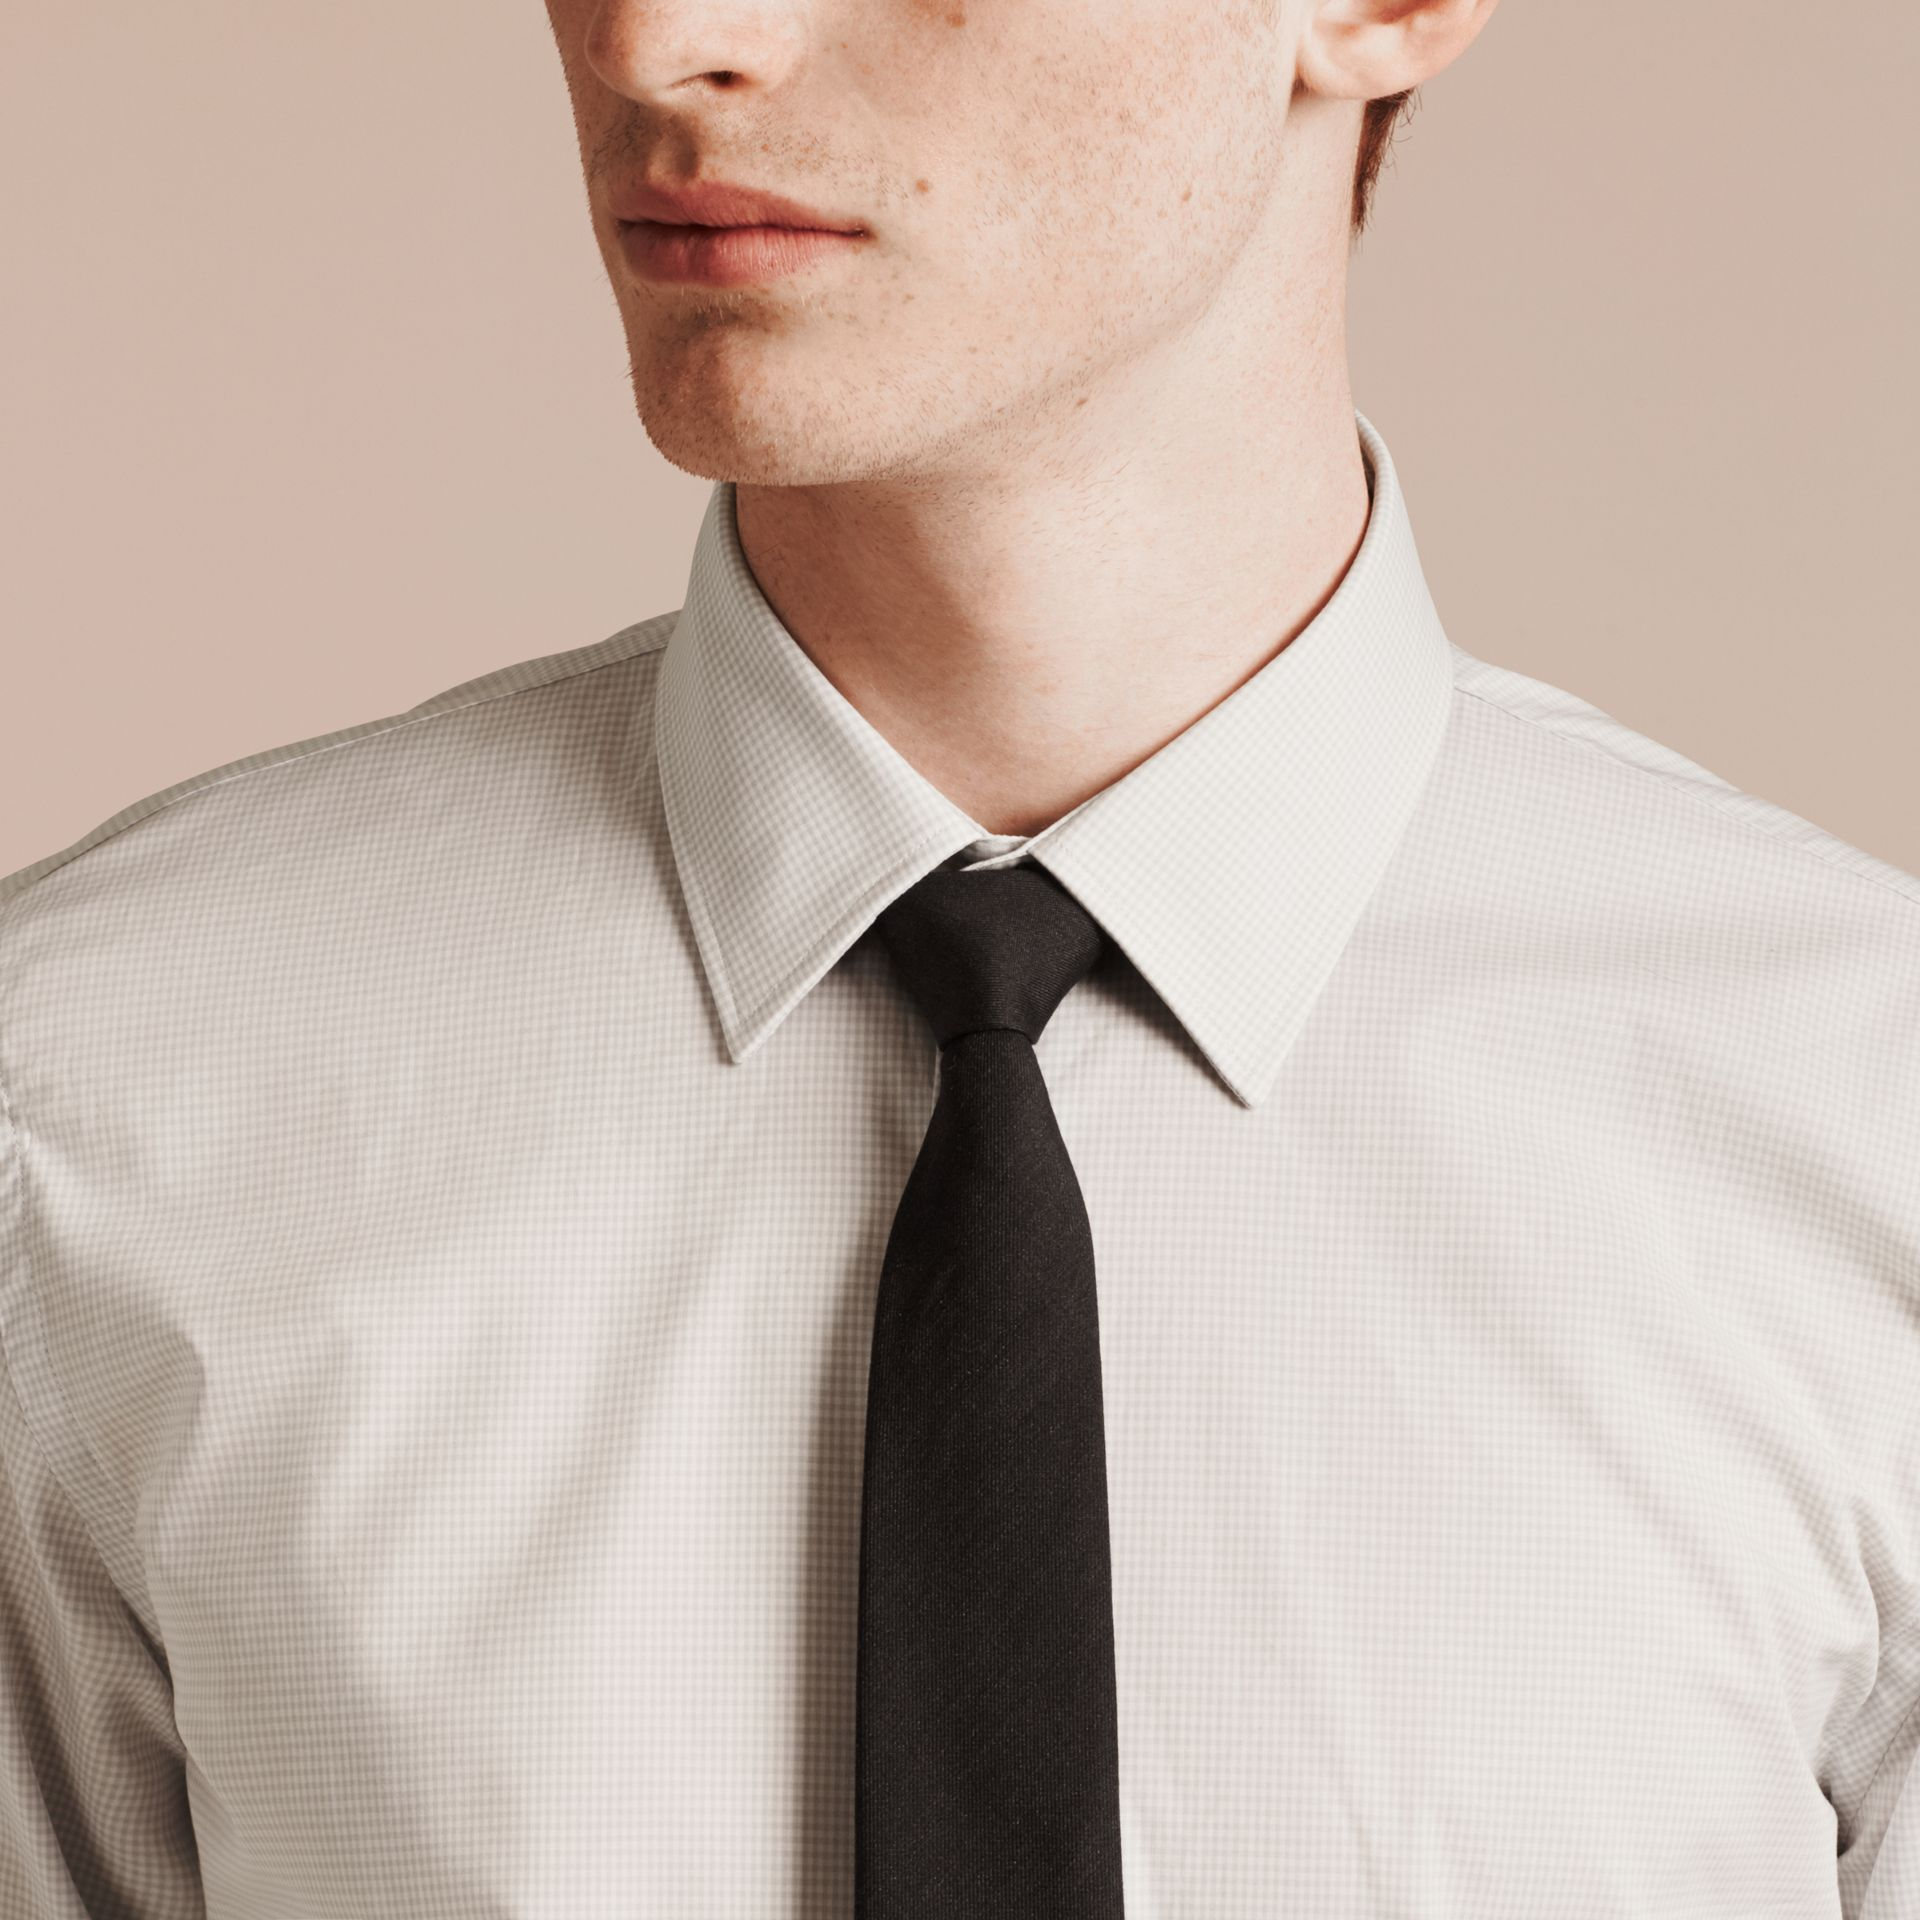 City grey Slim Fit Gingham Cotton Poplin Shirt City Grey - gallery image 5